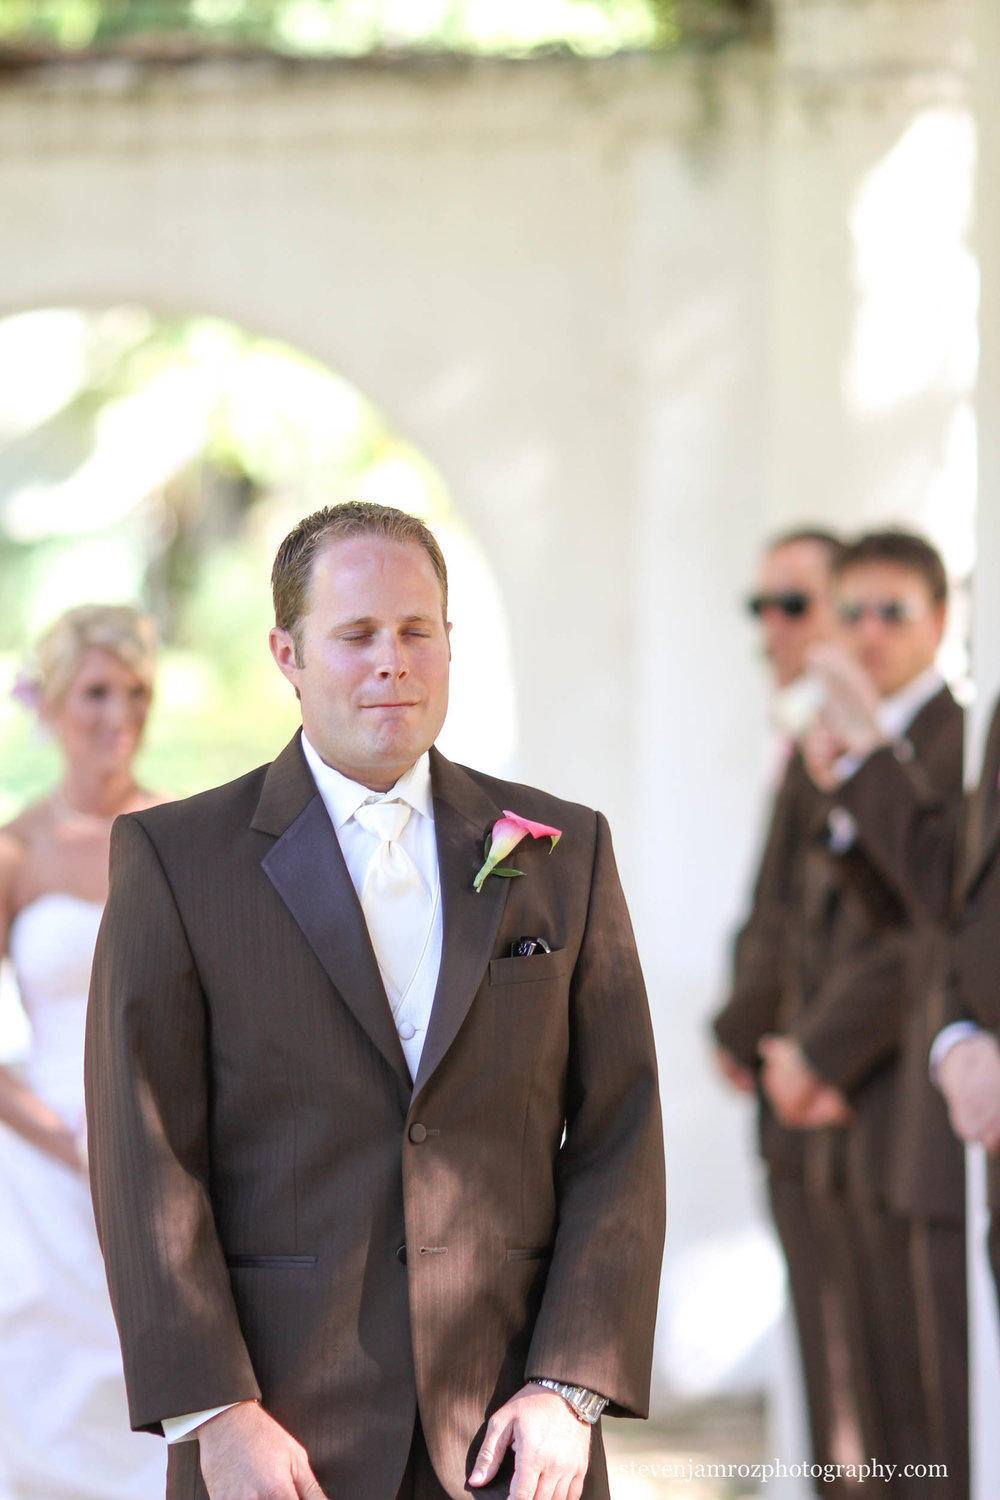 anticipation-groom-first-look-wedding-durham-steven-jamroz-photography-0068.jpg